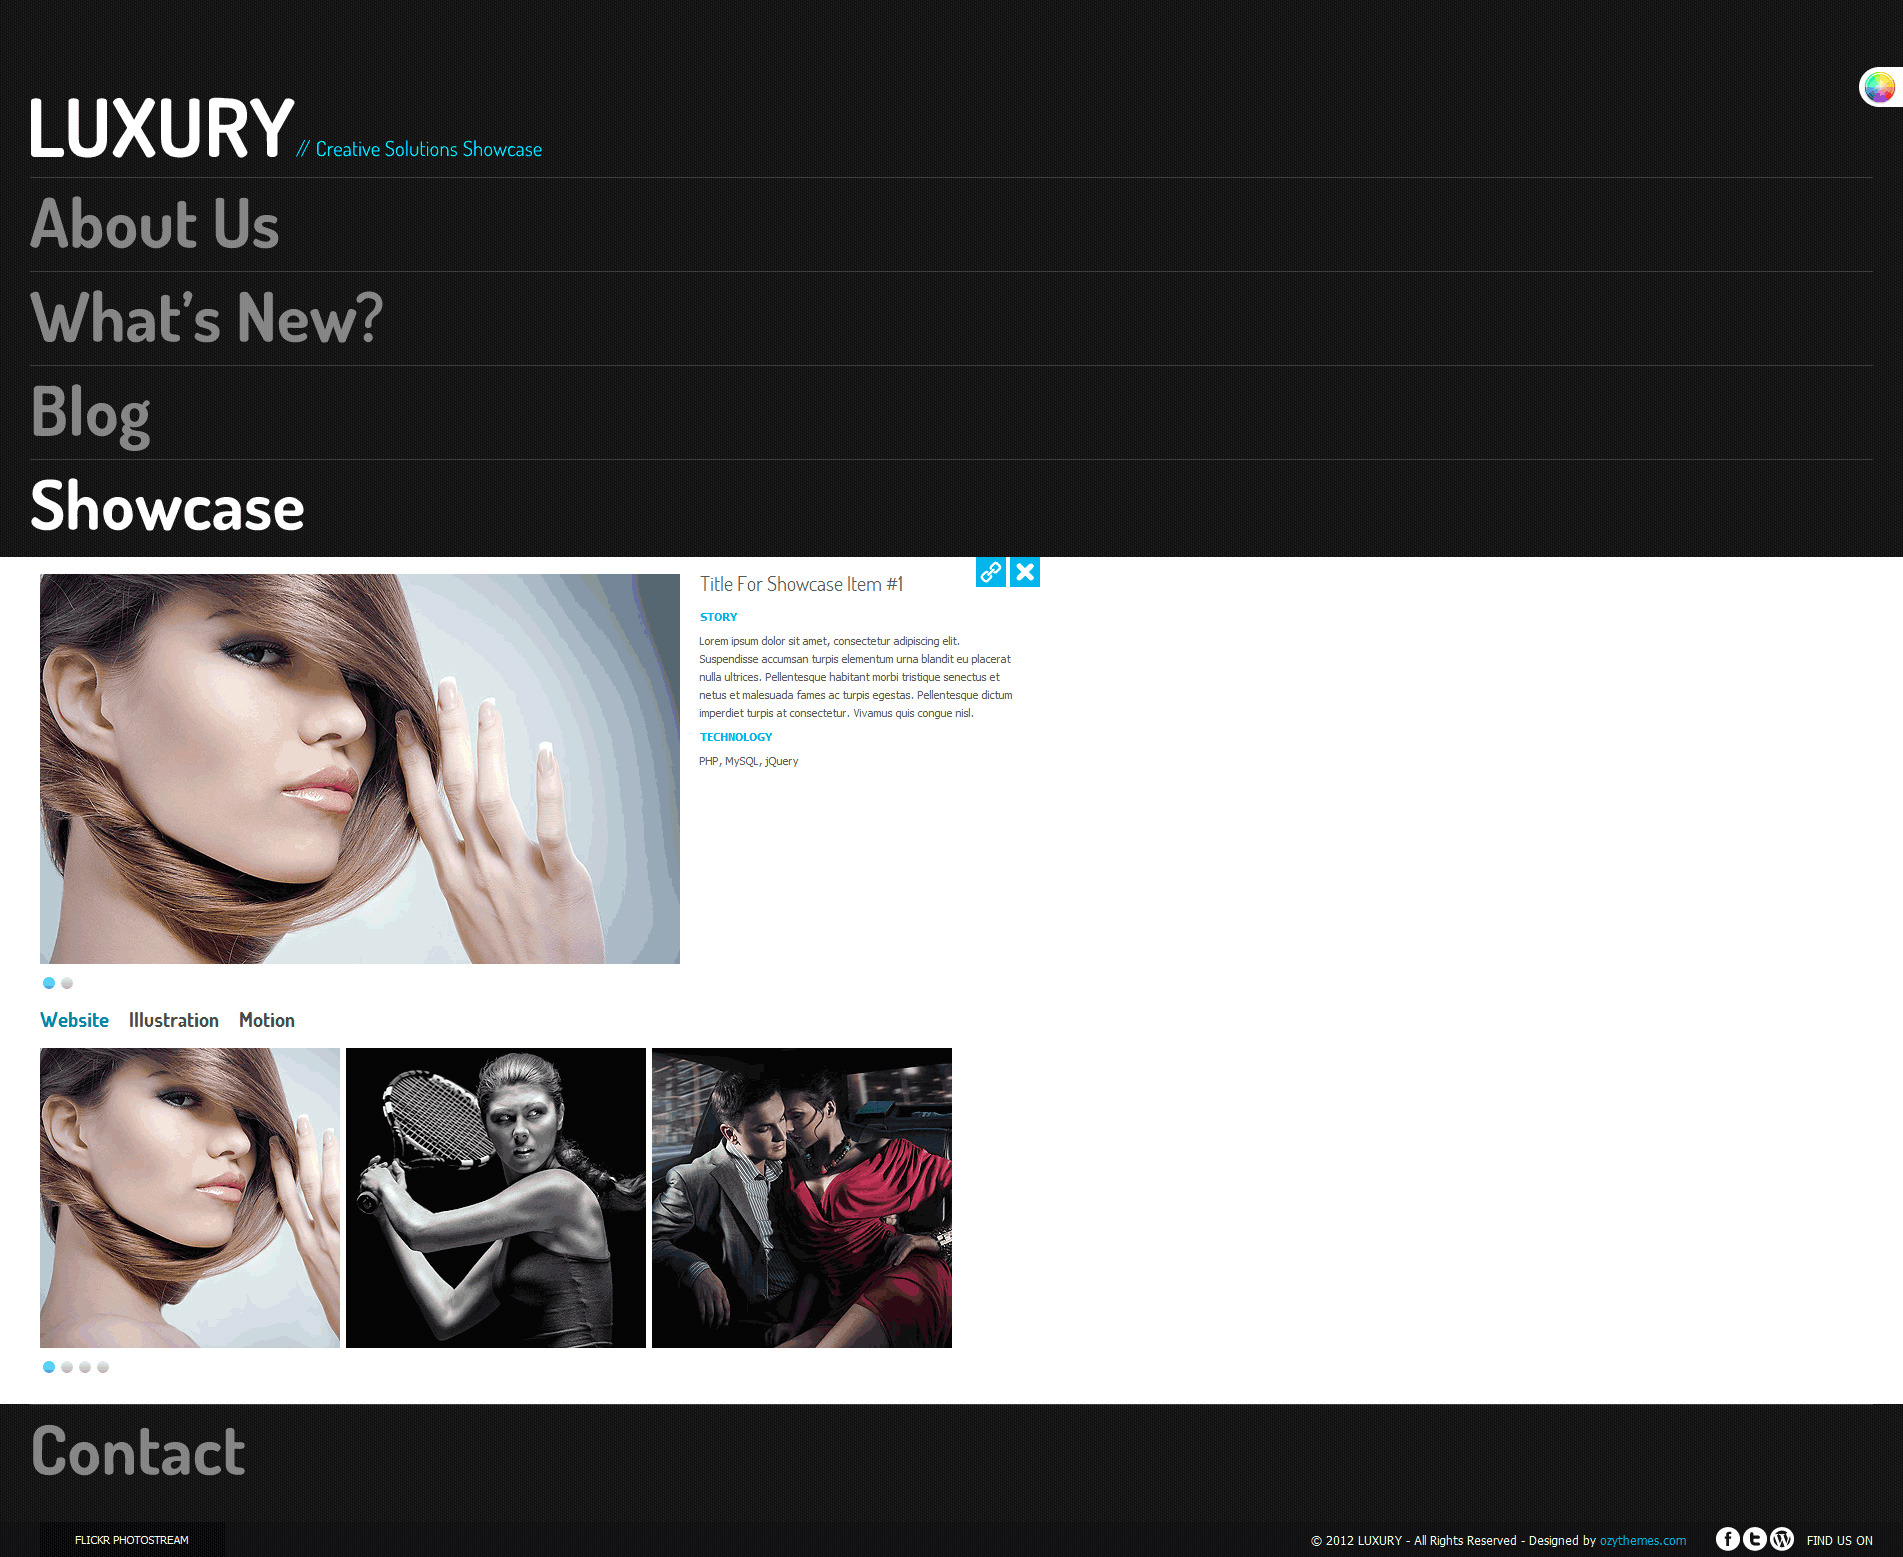 Luxury Stylish Accordion Wordpress Theme - selected showcase item detail page.